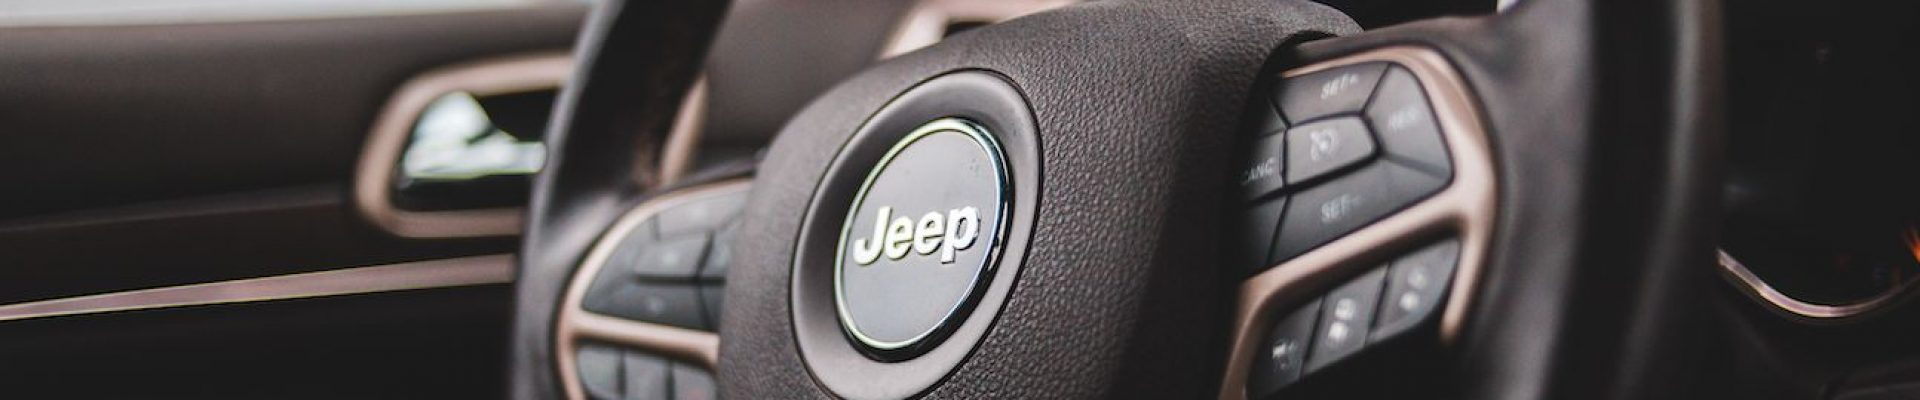 Jeep car battery banner 2